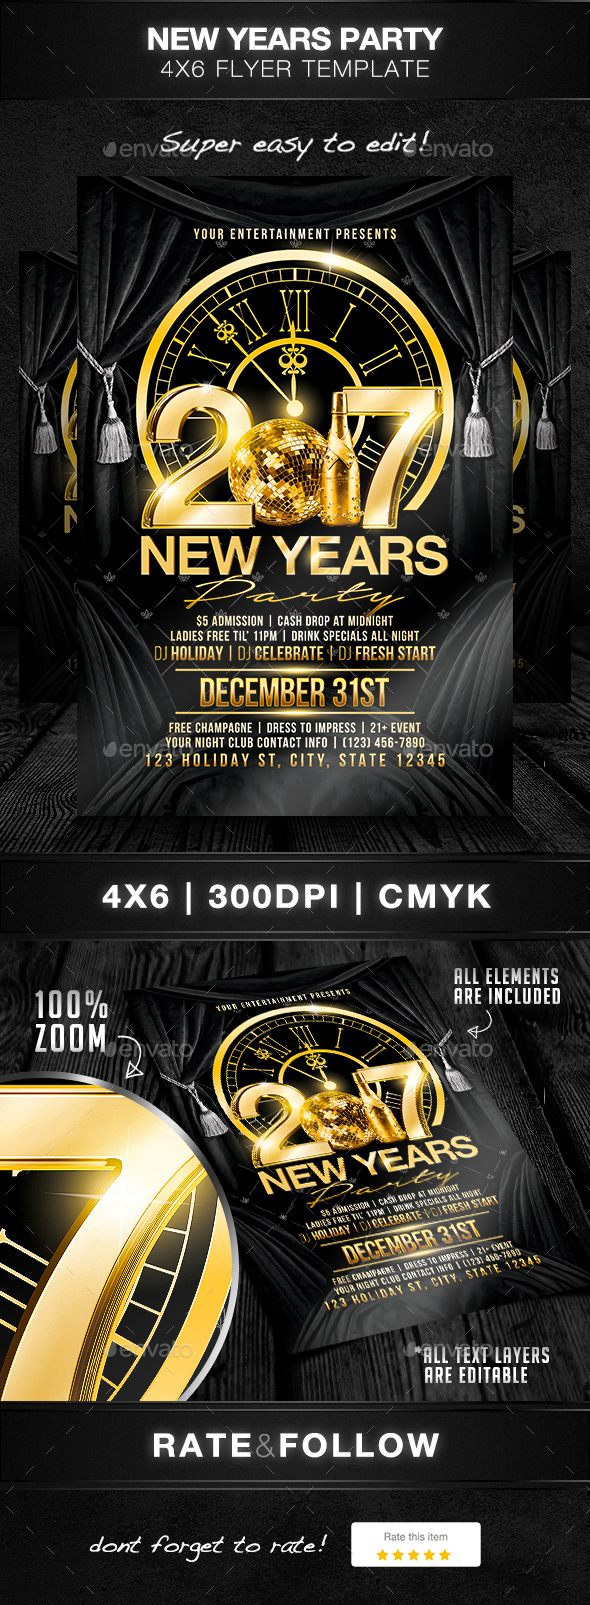 New Years Party Flyer Template - Holidays Events